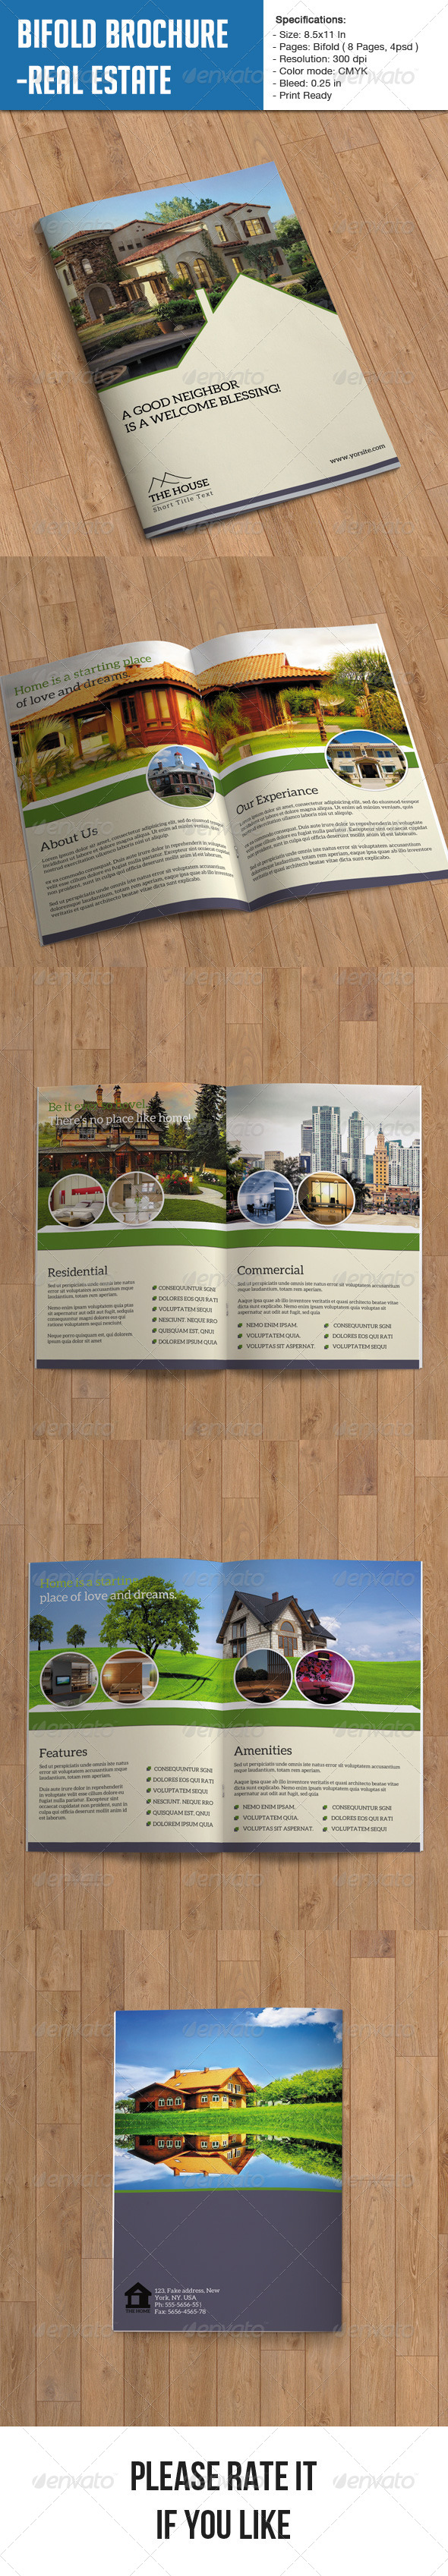 Real Estate Brochure - 8 Page - Corporate Brochures